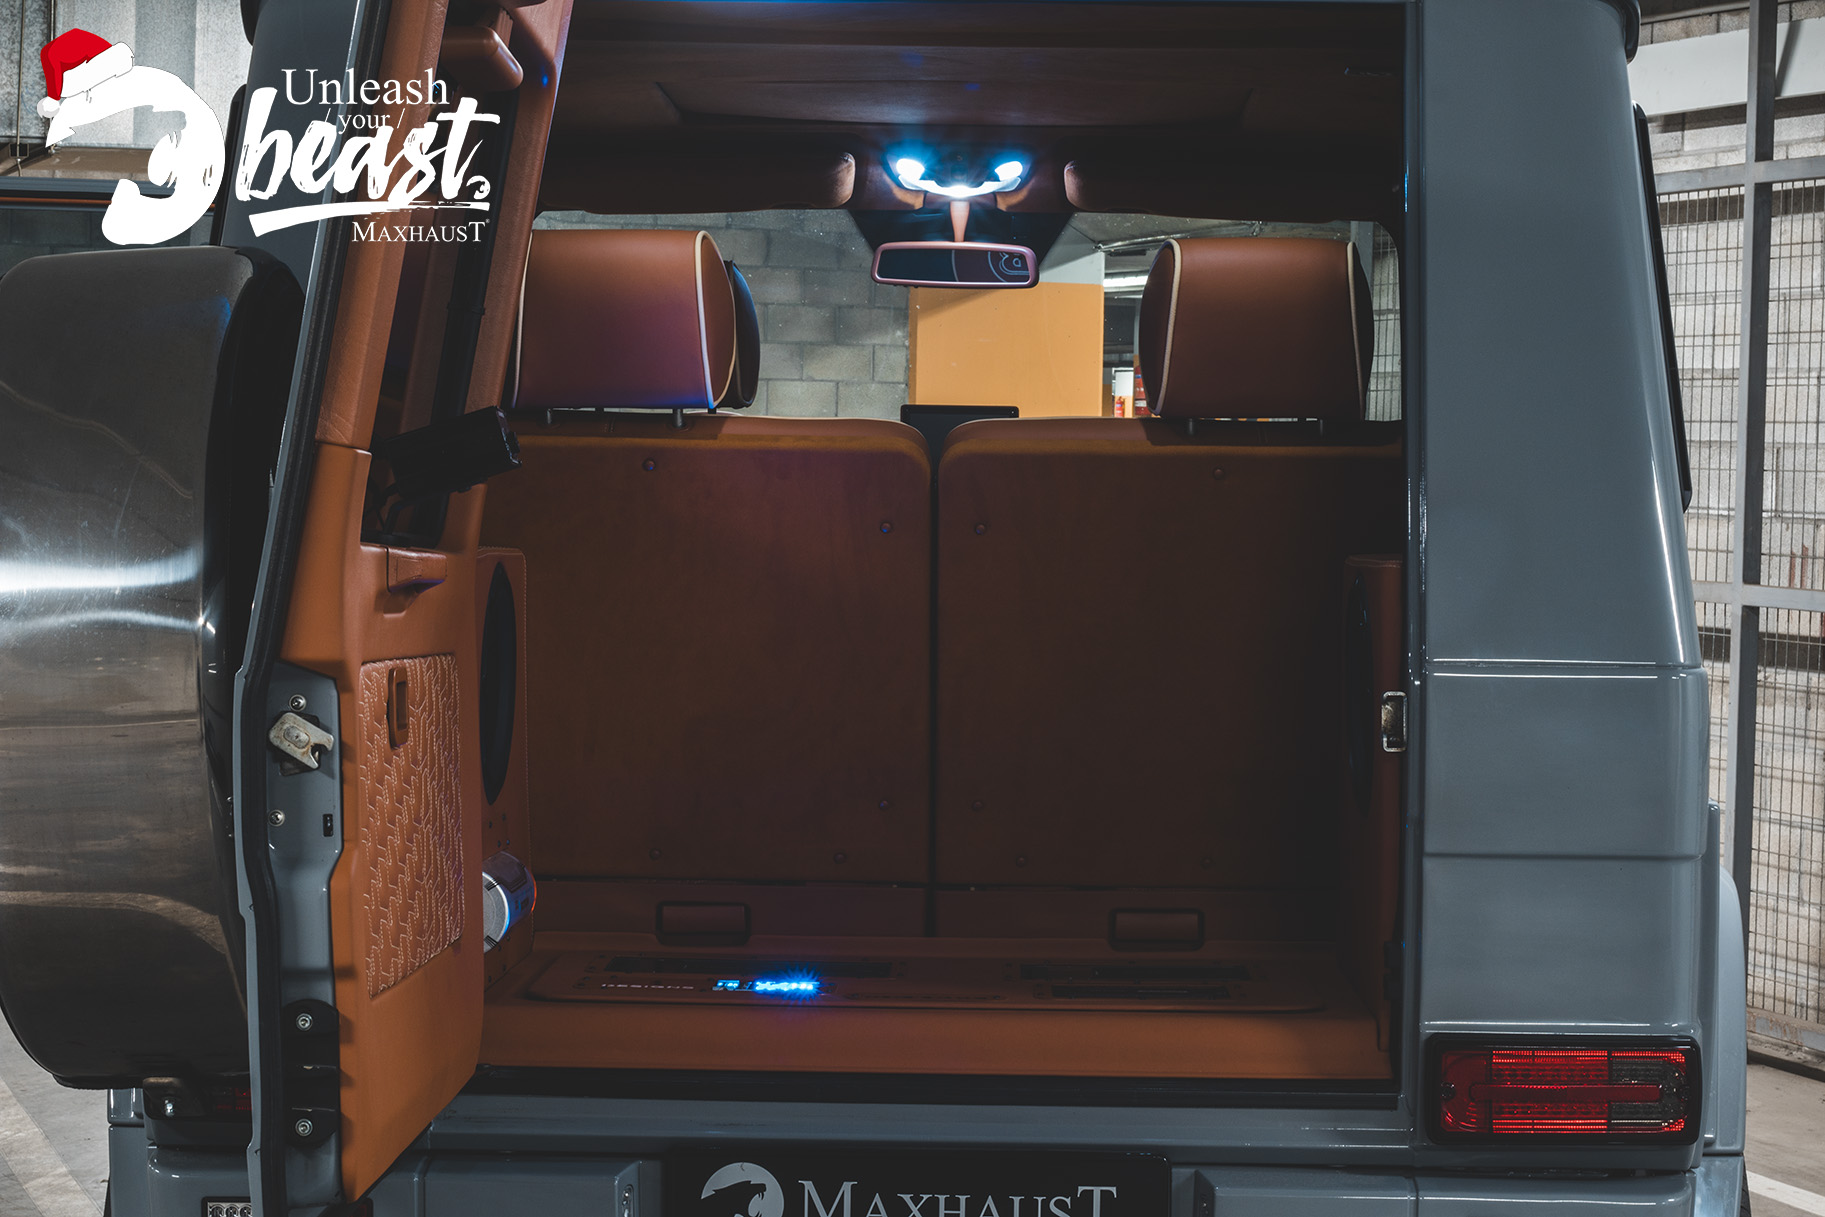 MERCEDES-BENZ G-CLASS AMG BRABUS MAXHAUST ACTIVE SOUD SYSTEM (7)